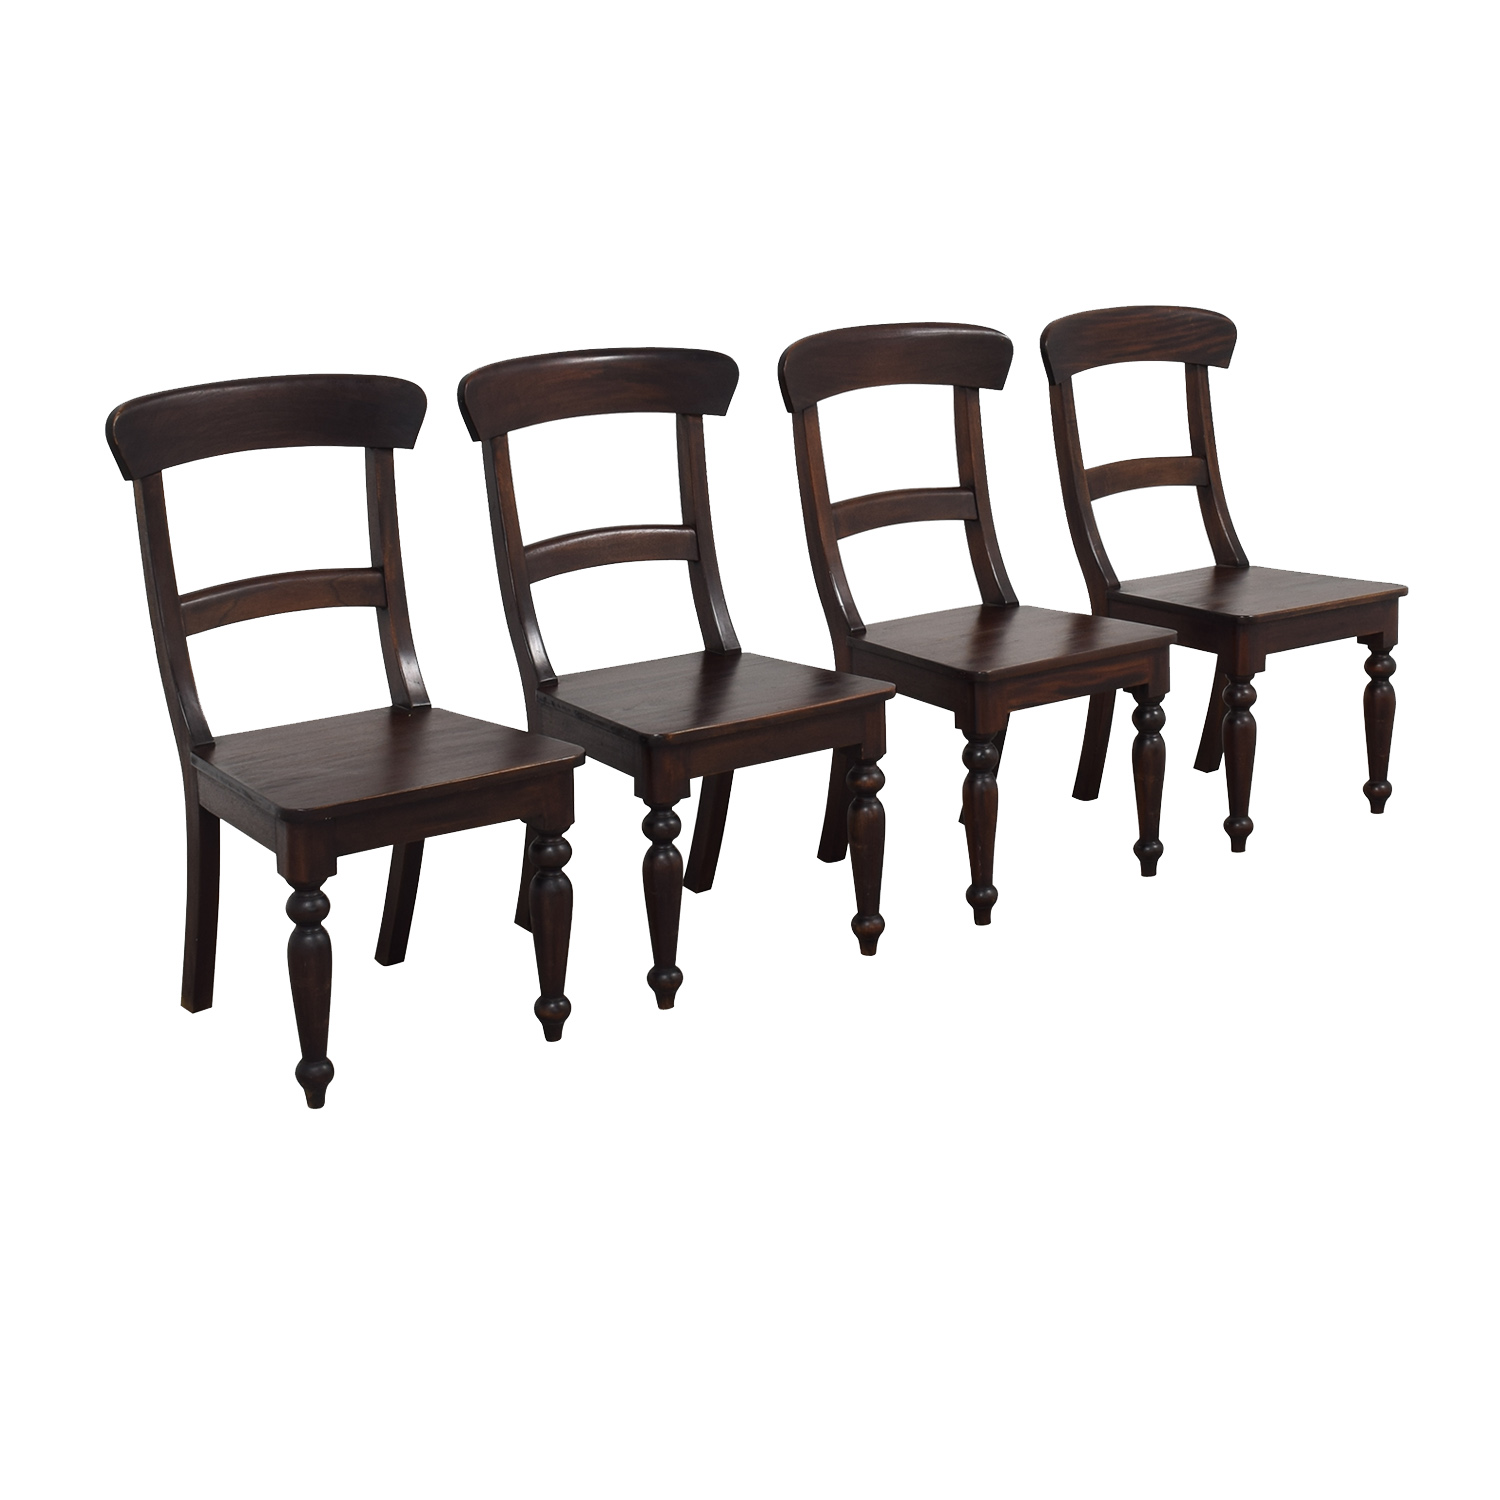 Crate & Barrel Crate & Barrel Farmhouse Dining Chairs nyc